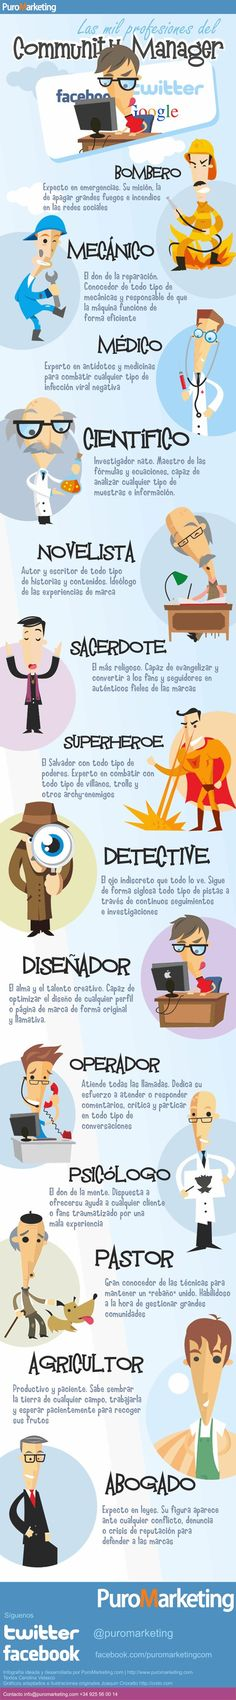 Las mil profesiones del community manager #diadelcommunitymanager